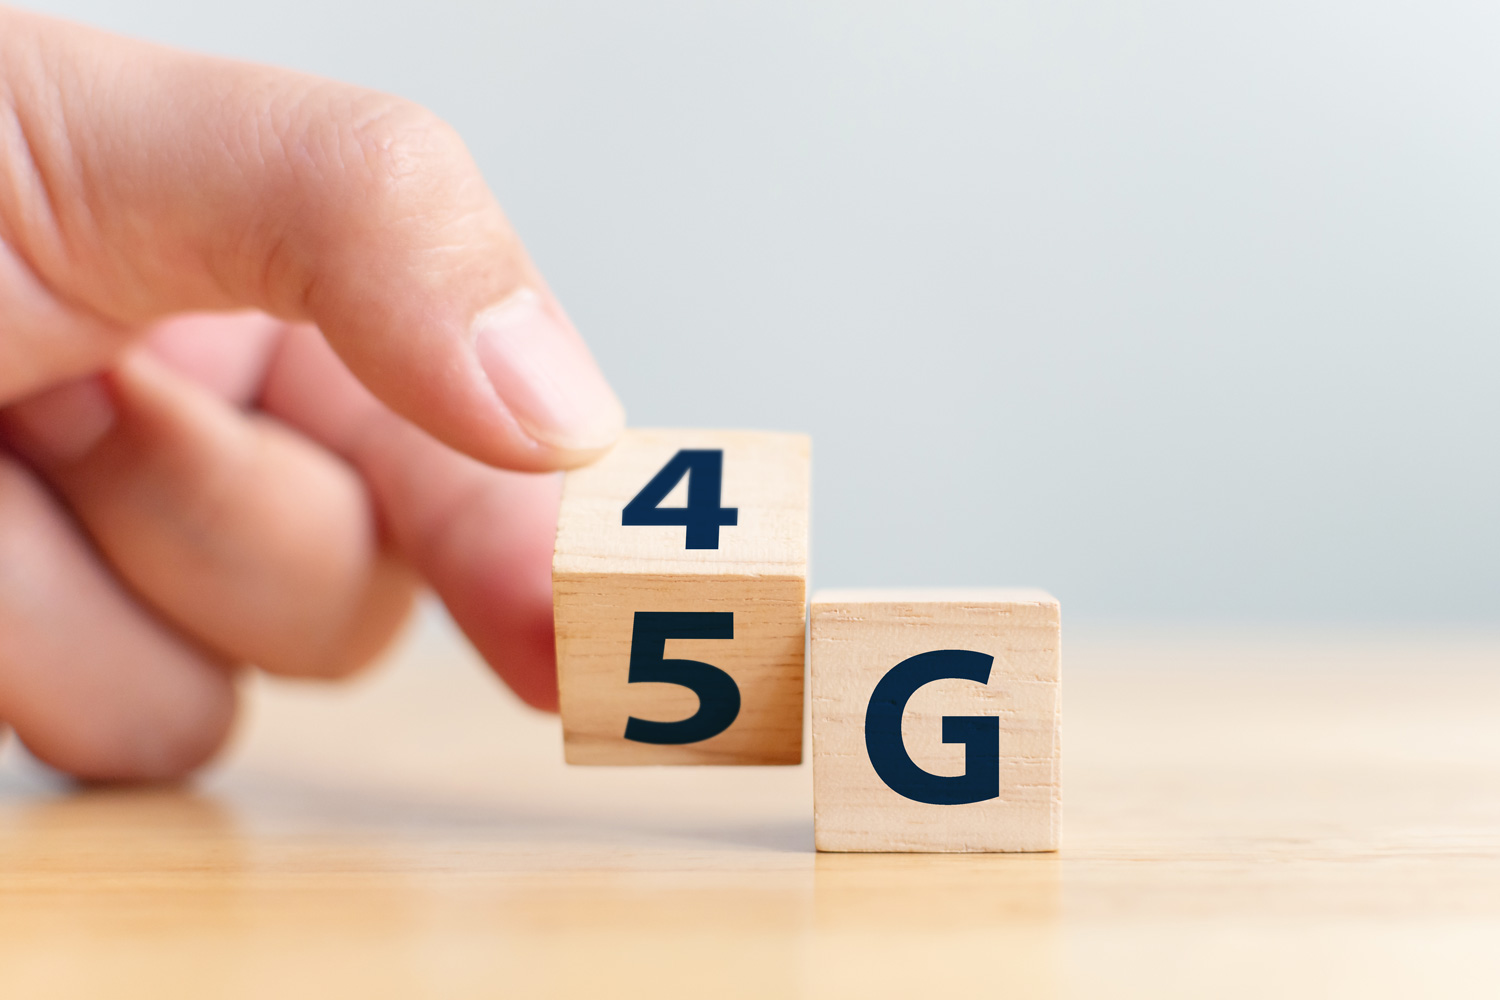 Explore the implications and options before choosing the right 5G package for you